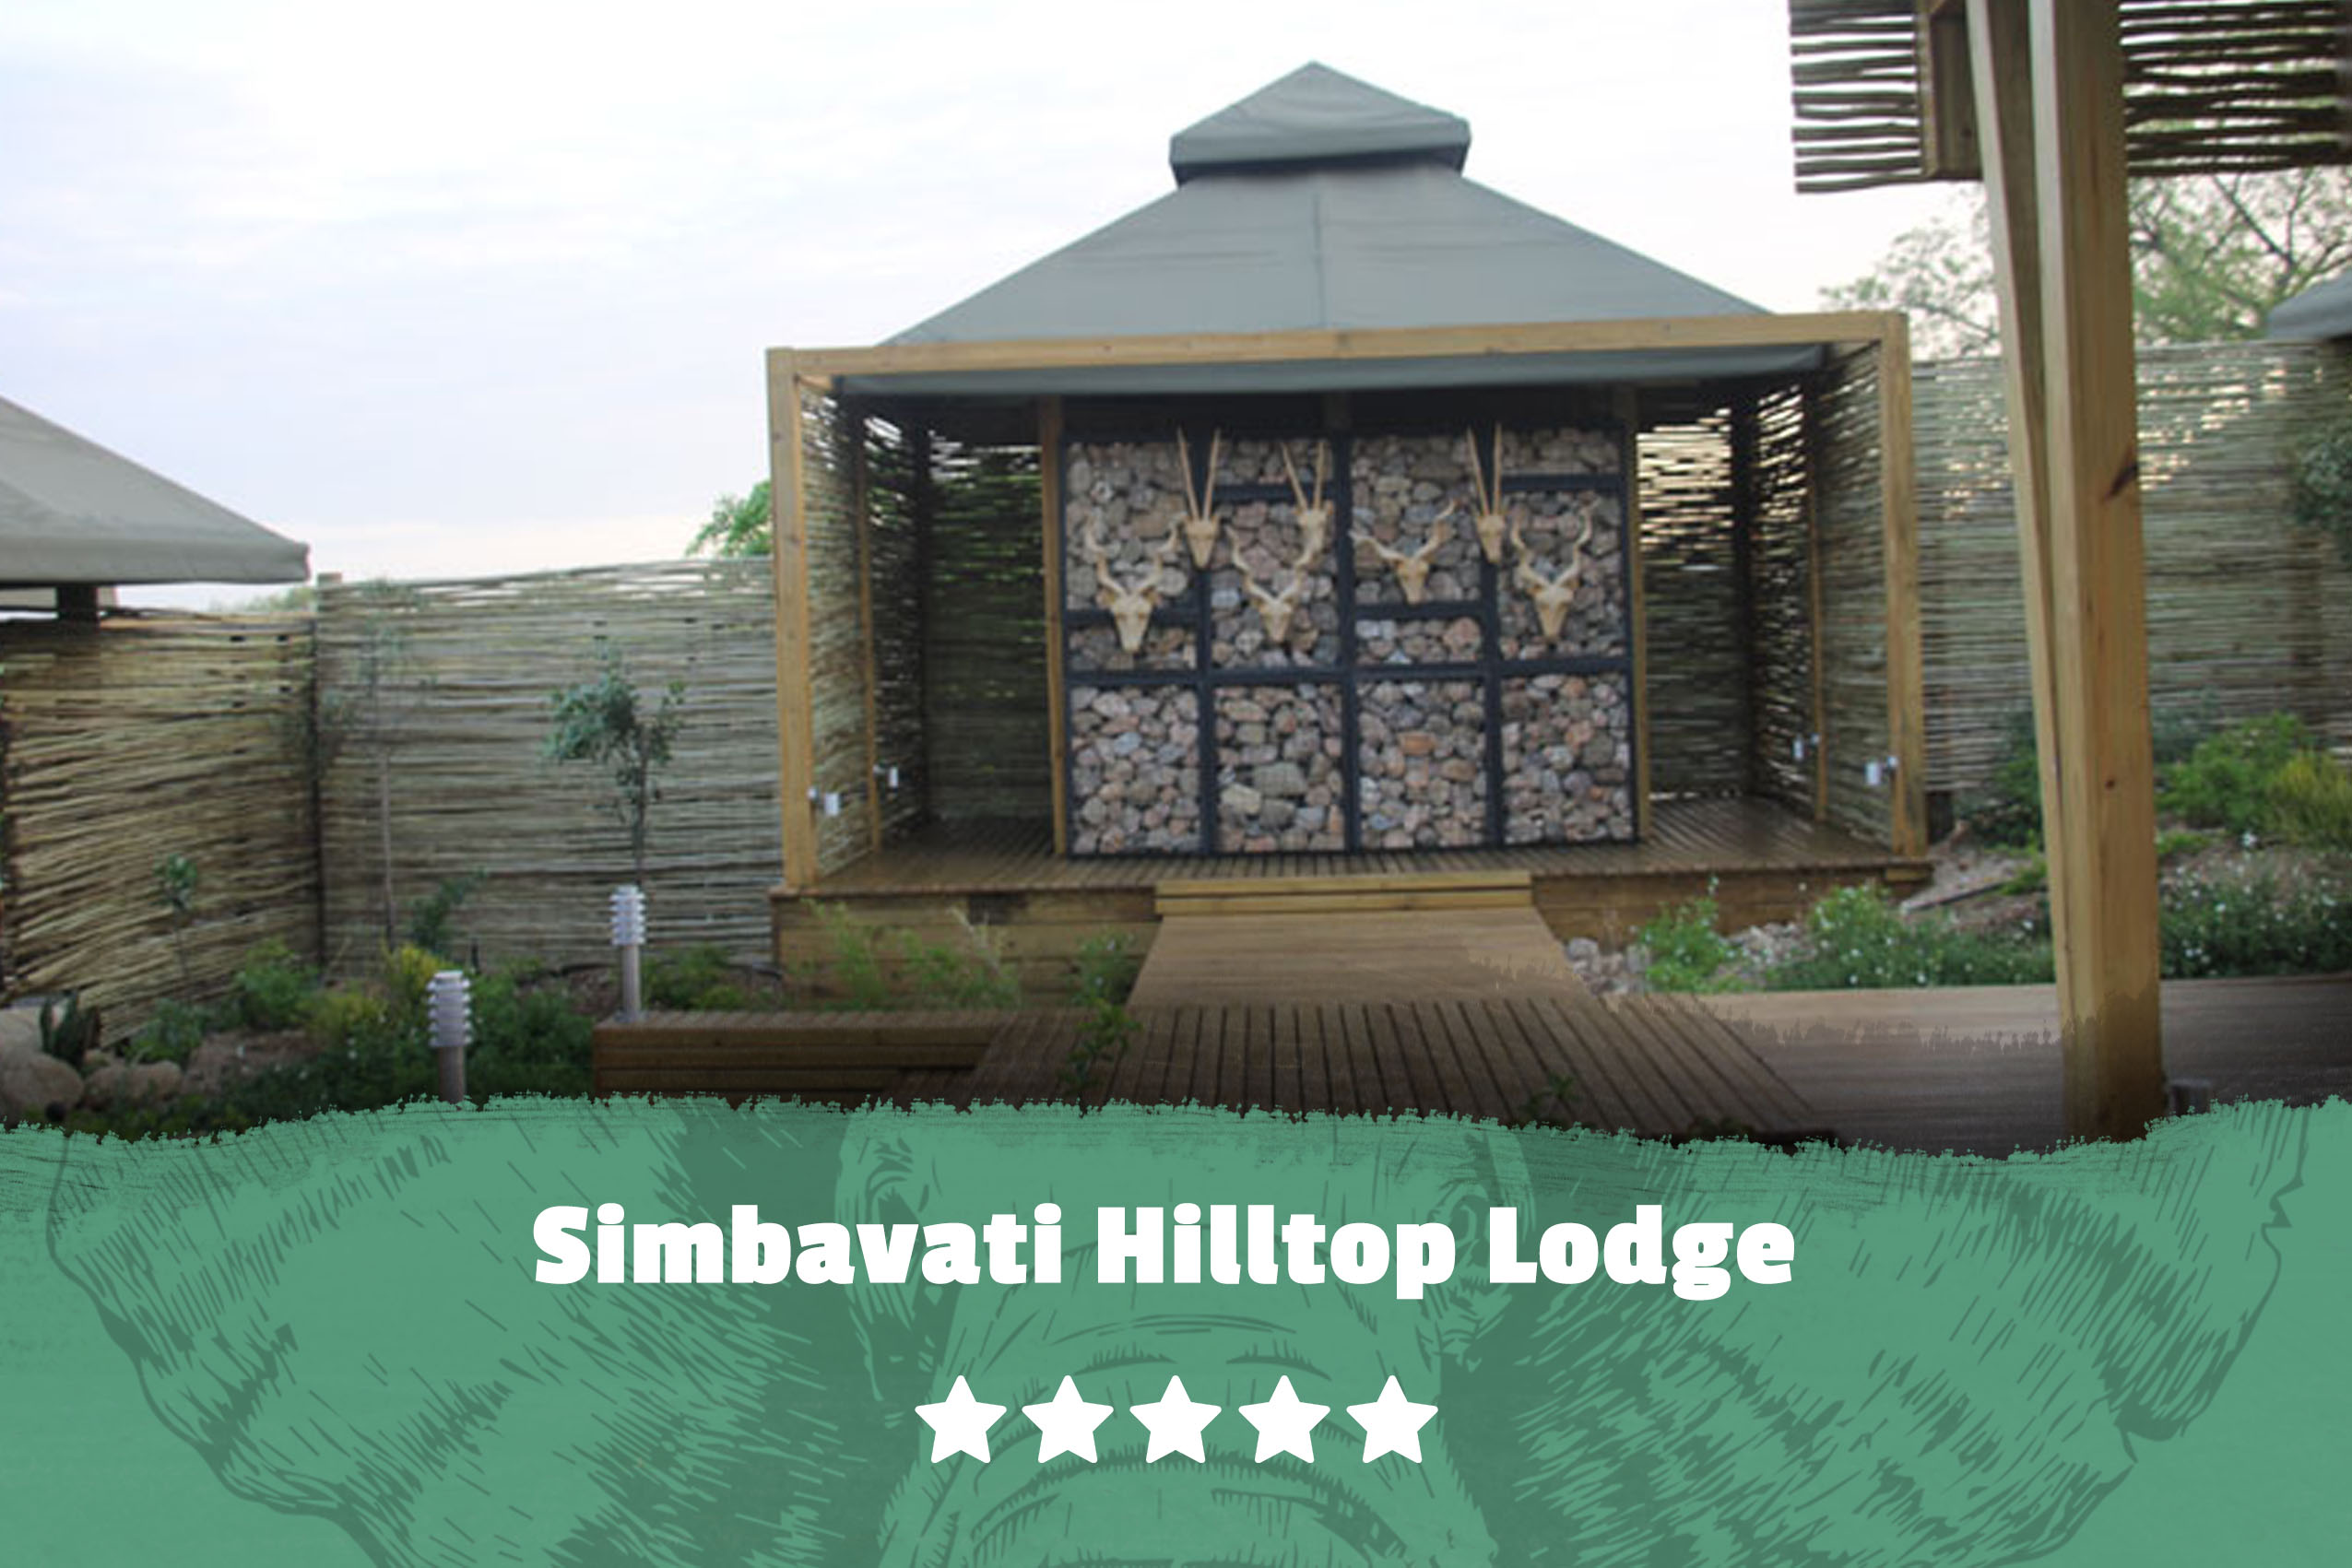 Kruger featured image Simbavati Hilltop Lodge